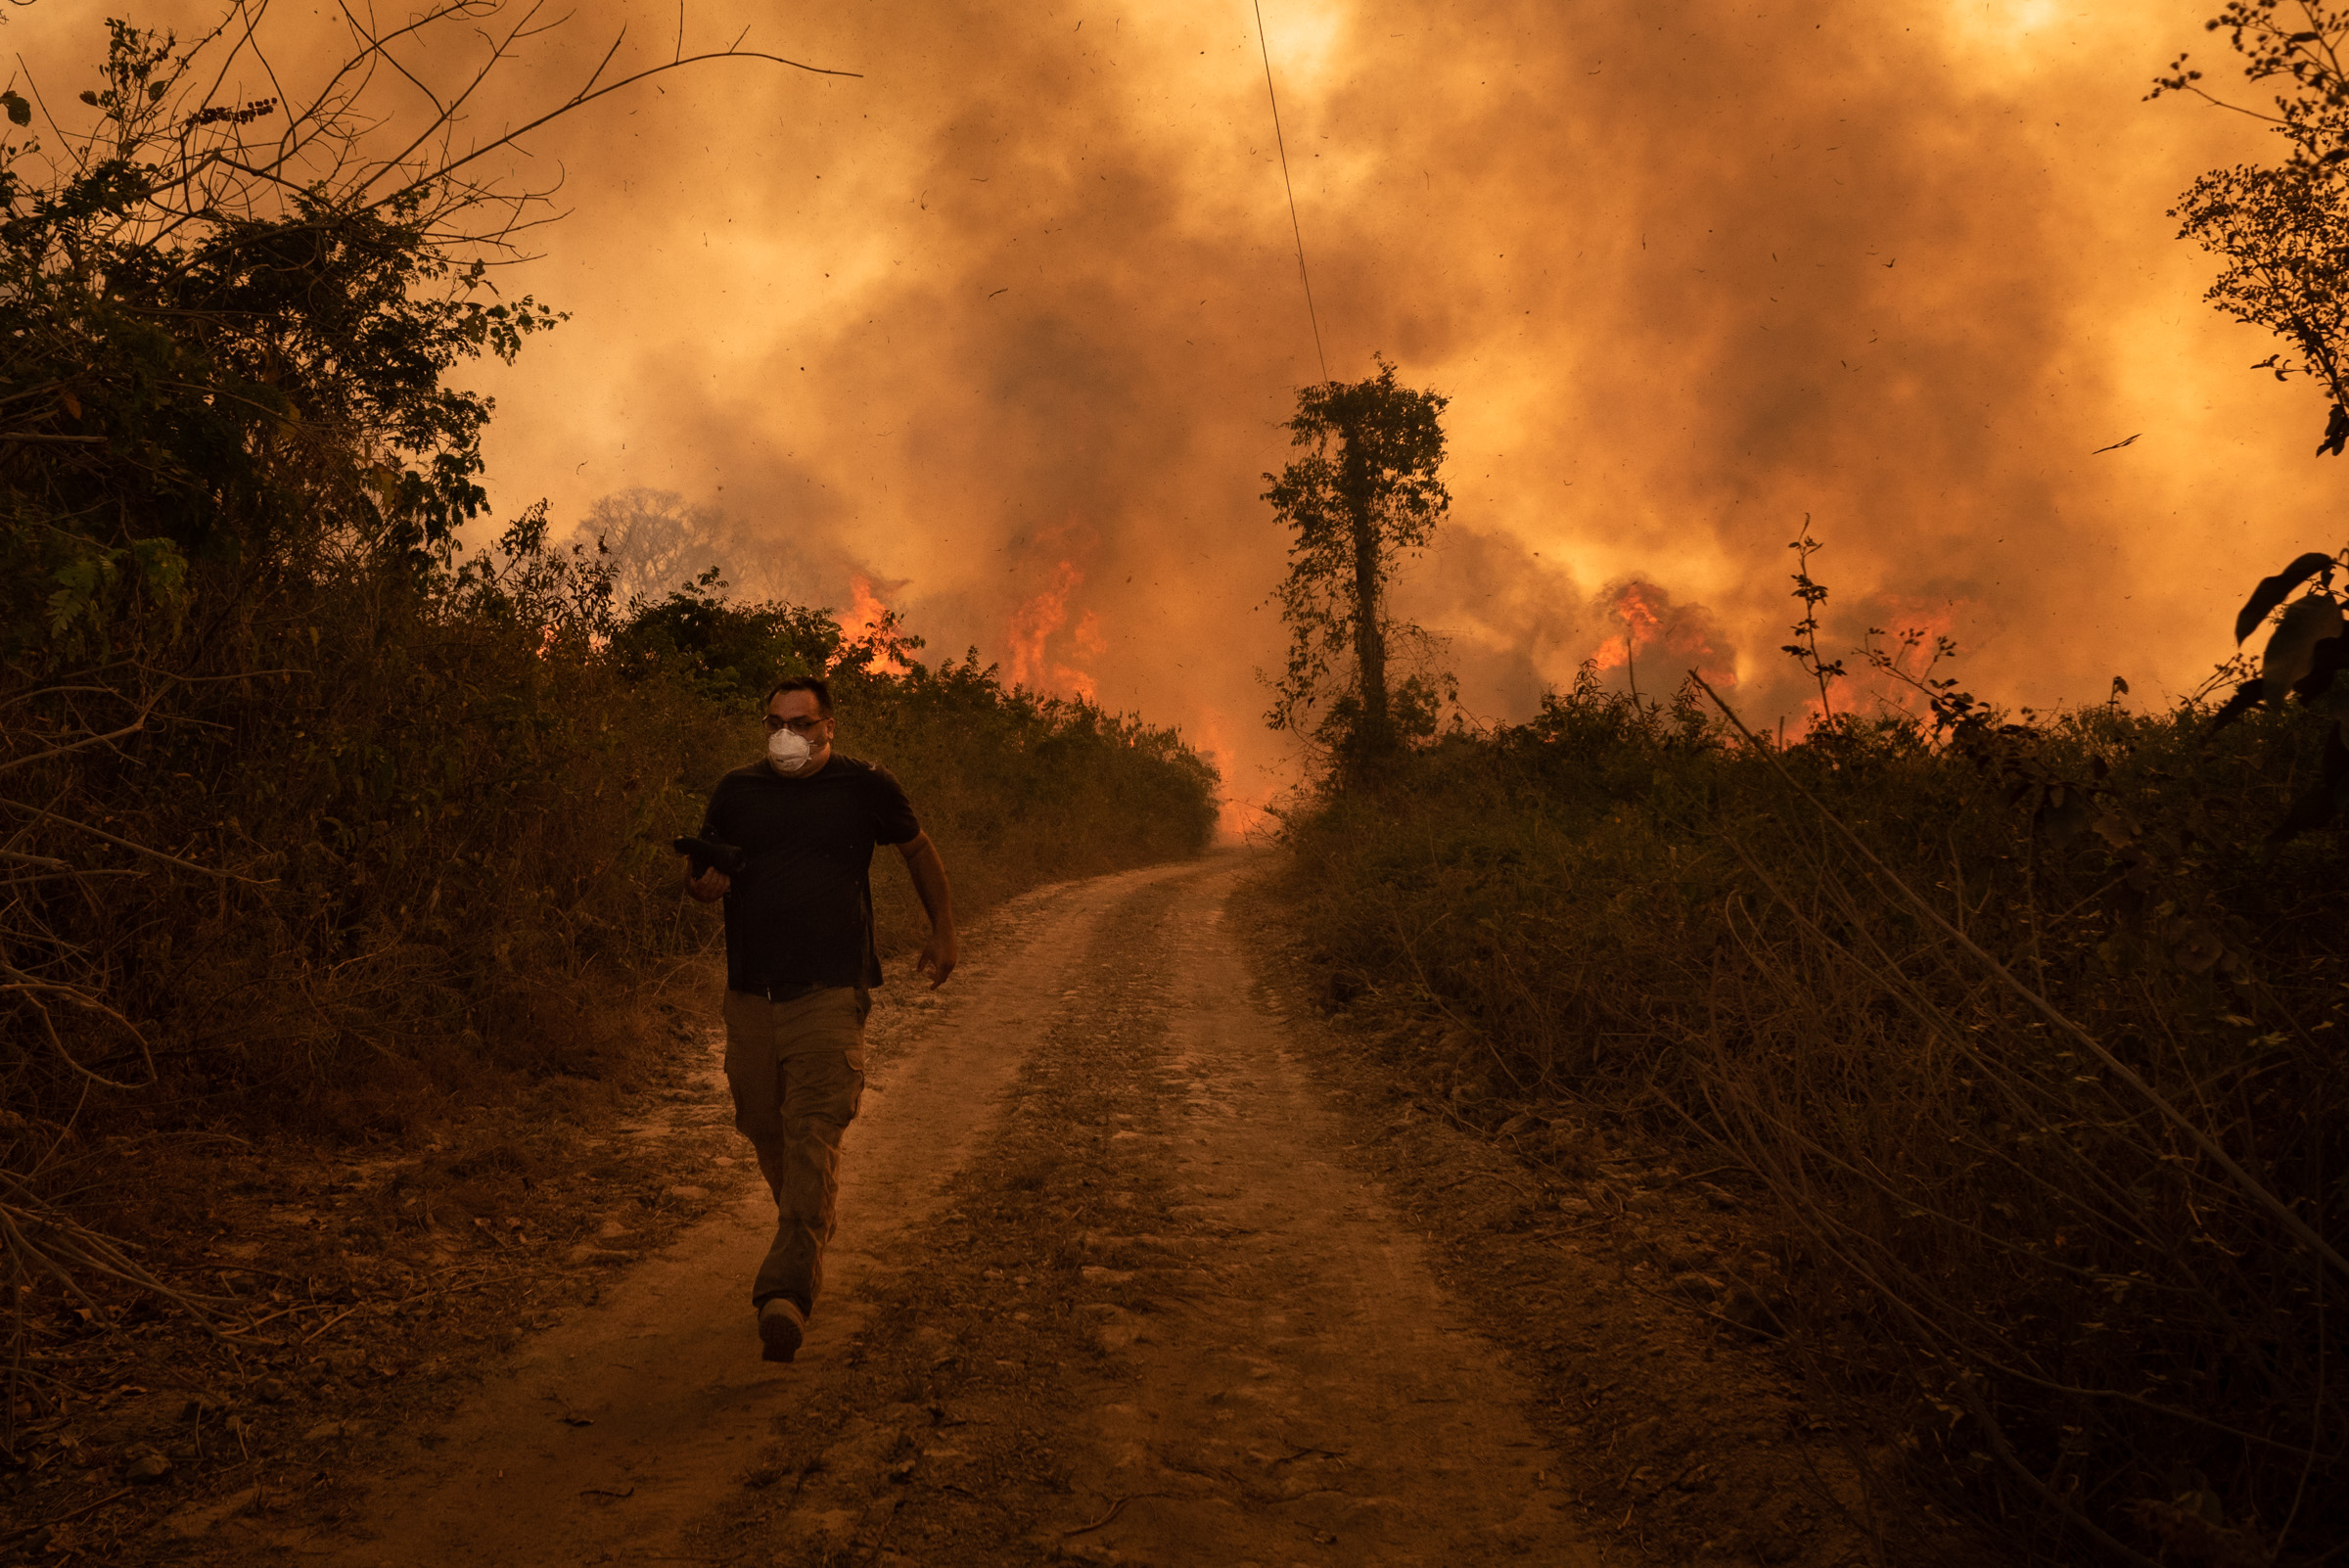 A man with a white facemask and dark clothes runs along a road towards the camera from a fire burning behind him, the whole sky yellow with smoke.